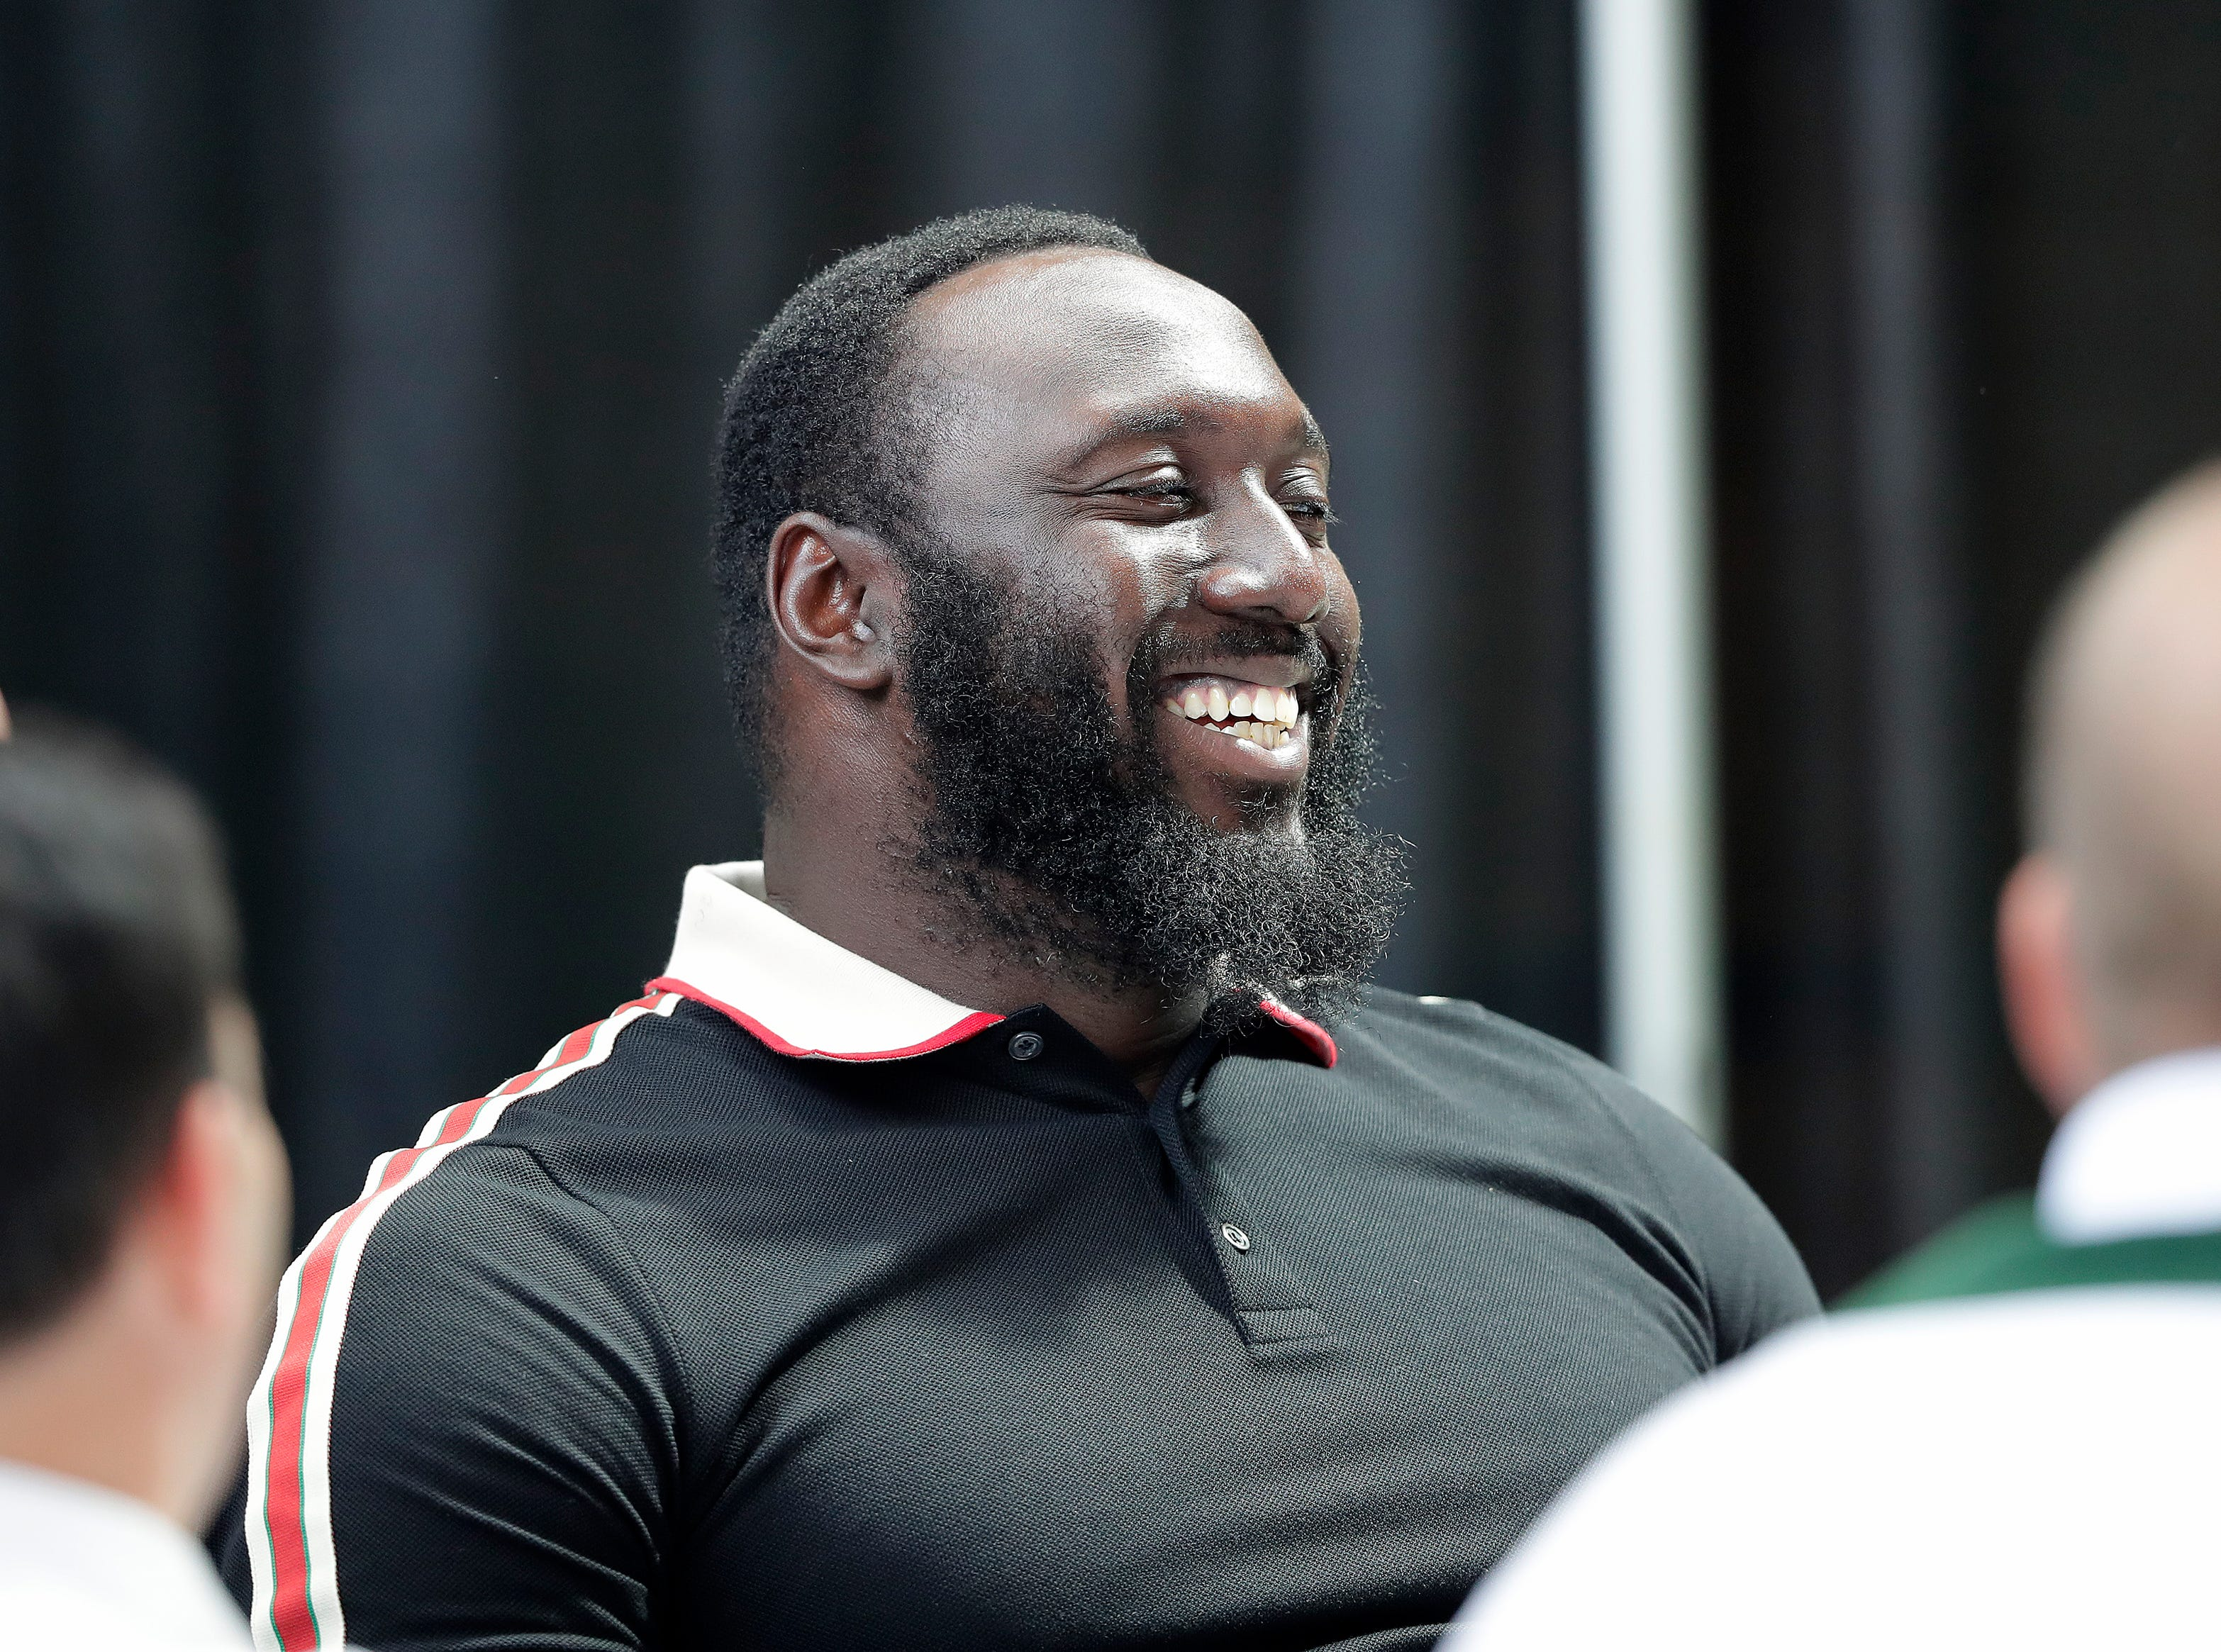 Green Bay Packers defensive end Muhammad Wilkerson (96) laughs during the Green Bay Chamber of Commerce Welcome Back Packers Luncheon at Lambeau Field Wednesday, August 29, 2018 in Green Bay, Wis.